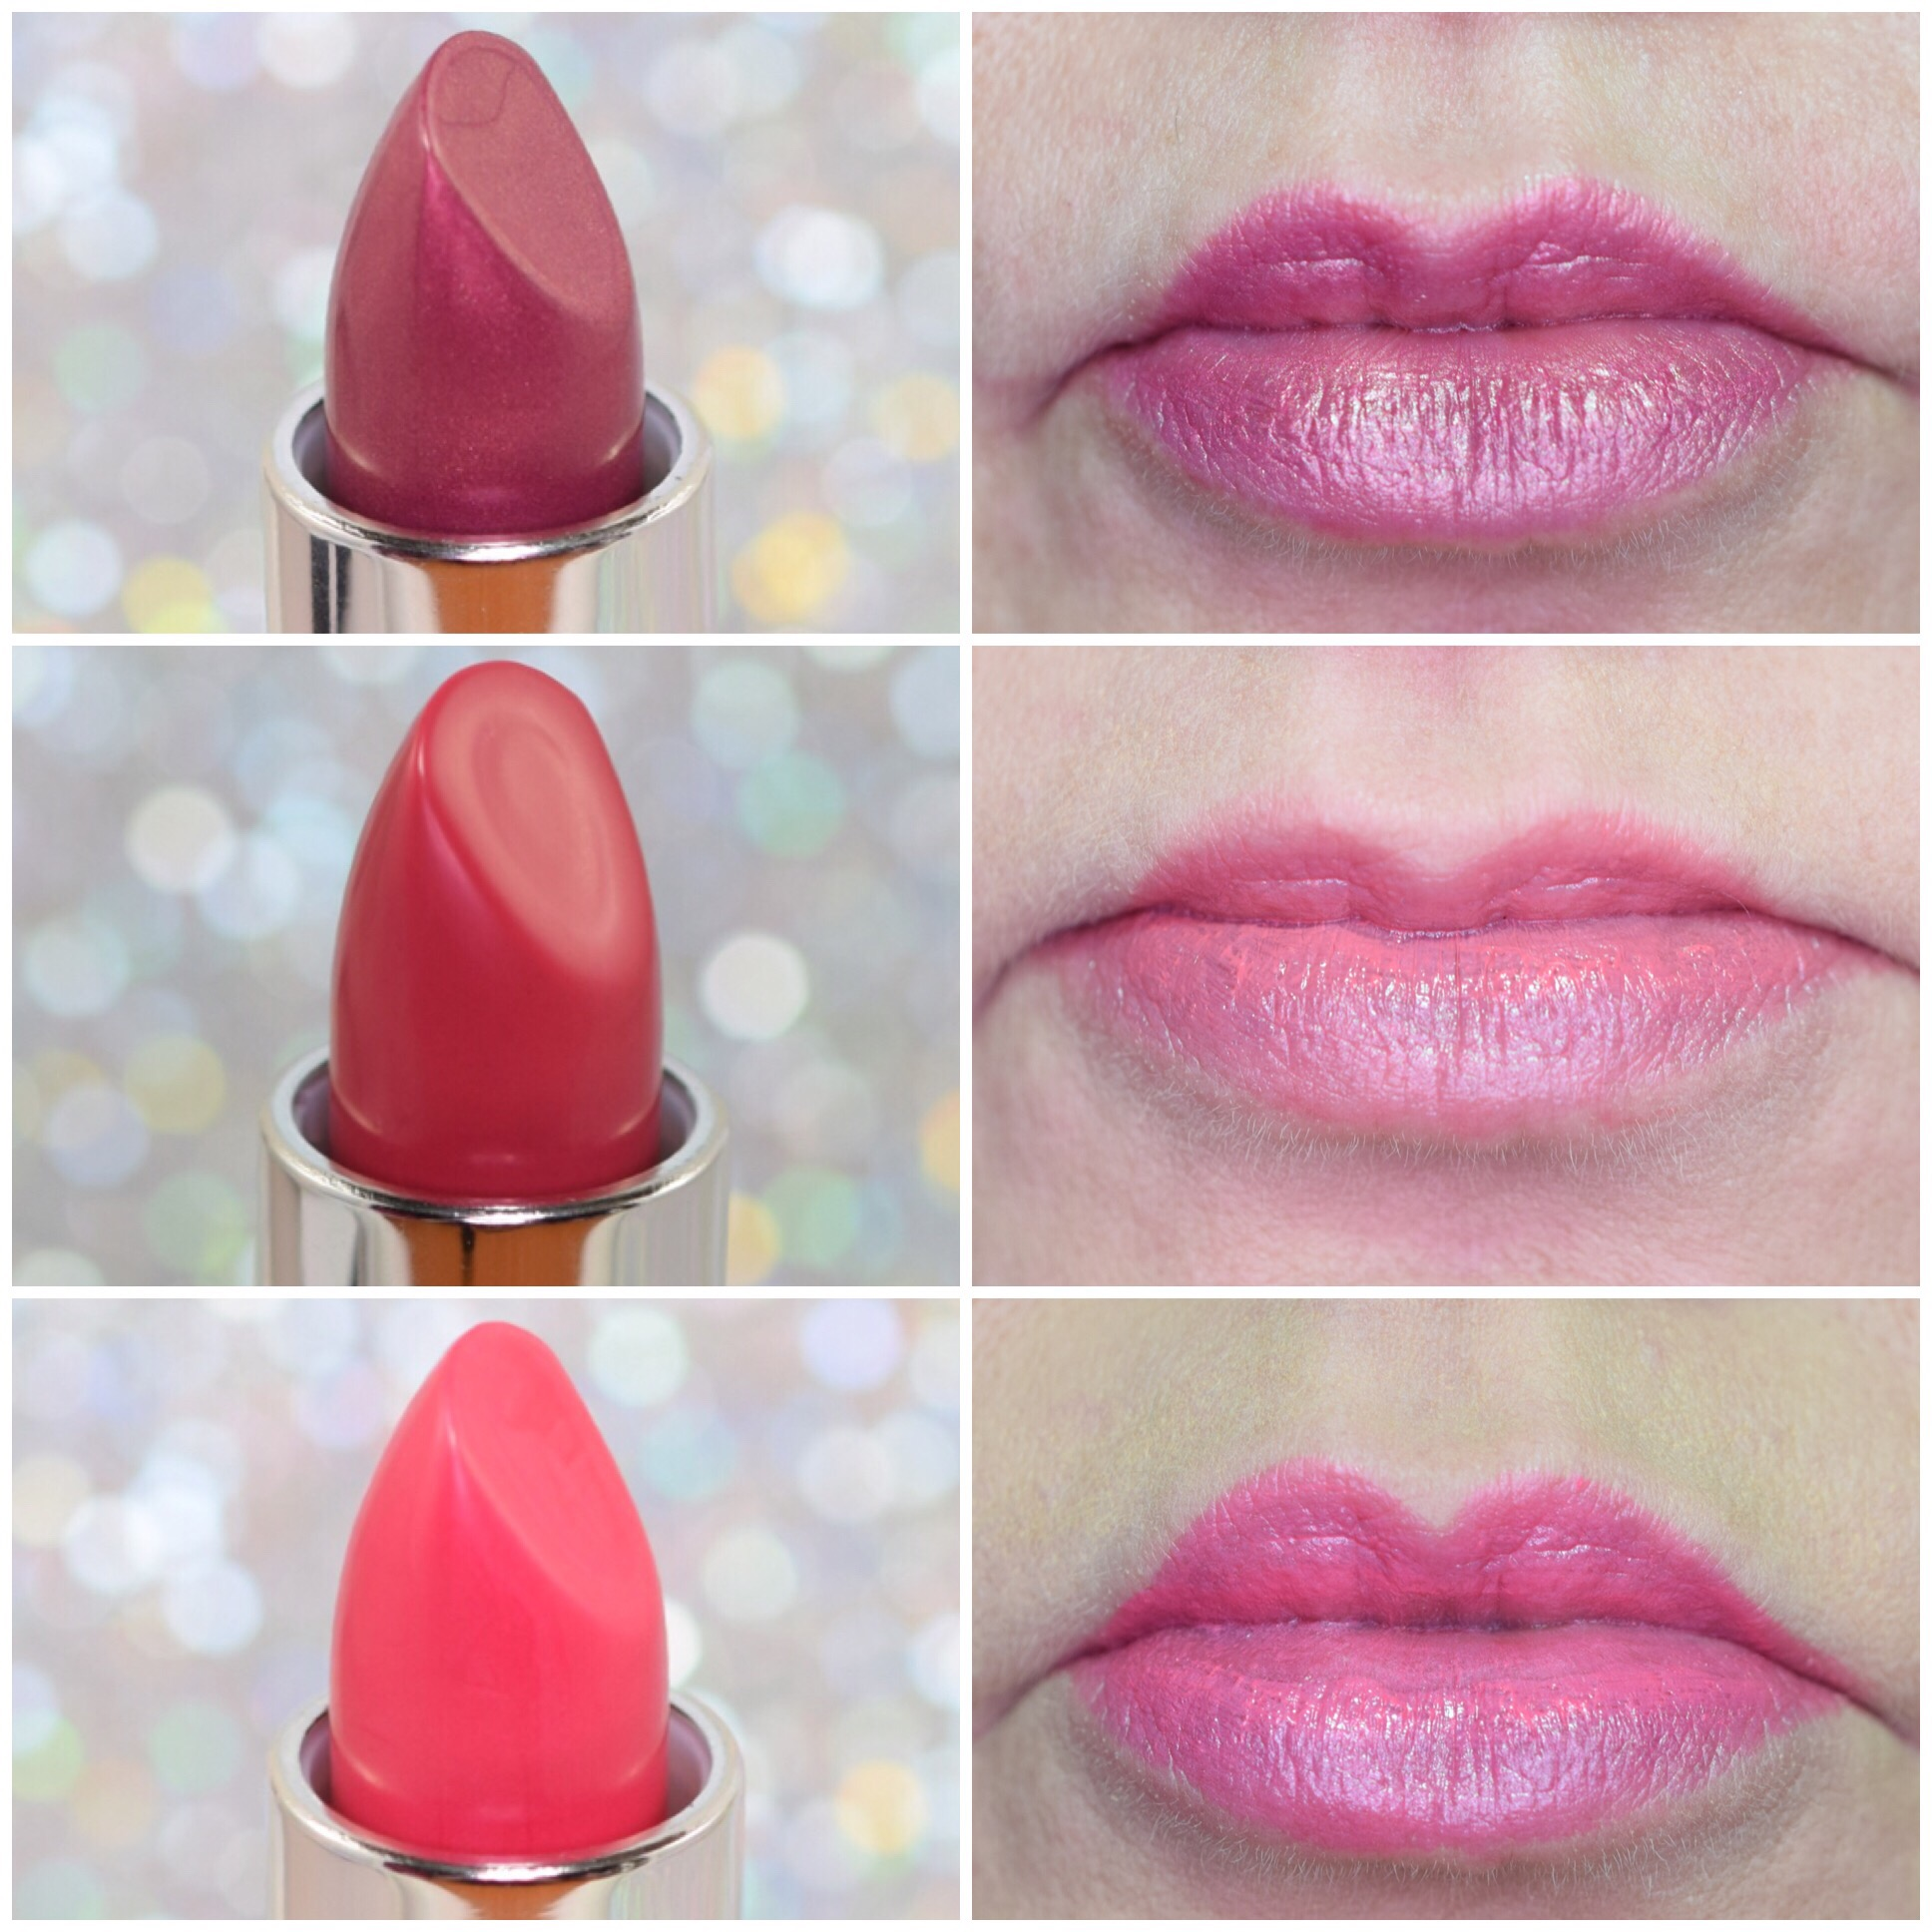 New Zoya Lipstick Lippies